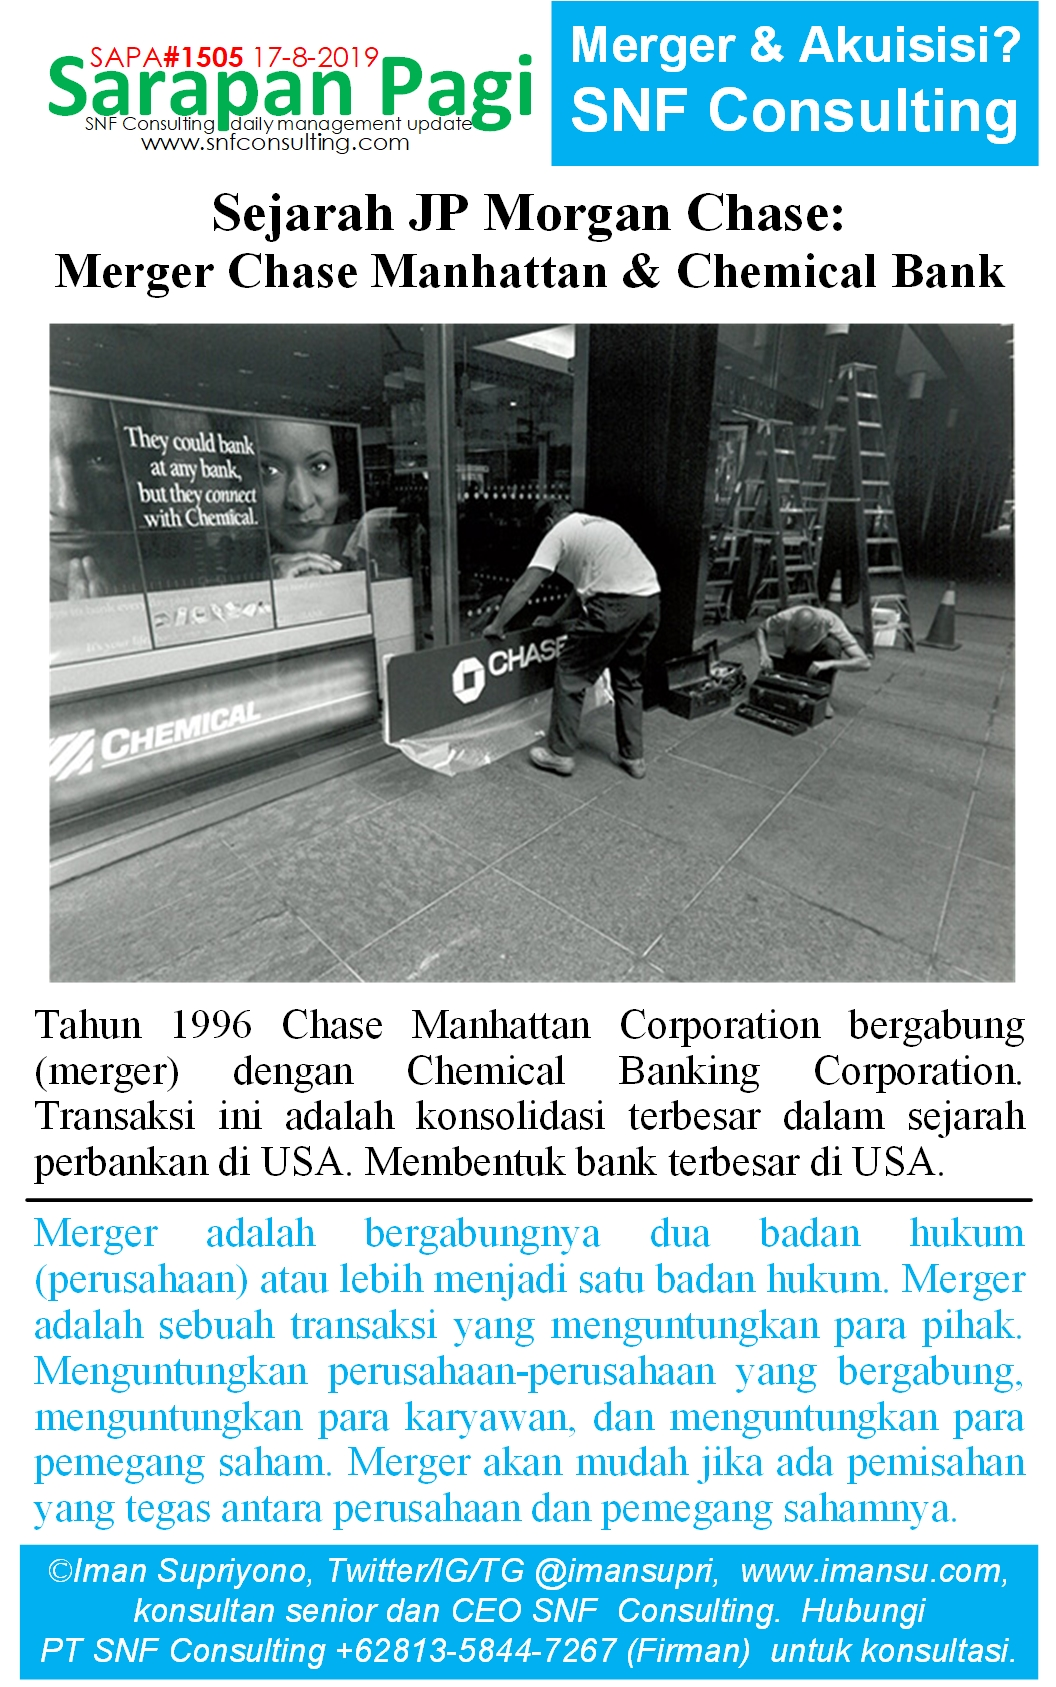 SAPA1505 Sejarah JP Morgan Chase merger chase manhattan n chemical banking